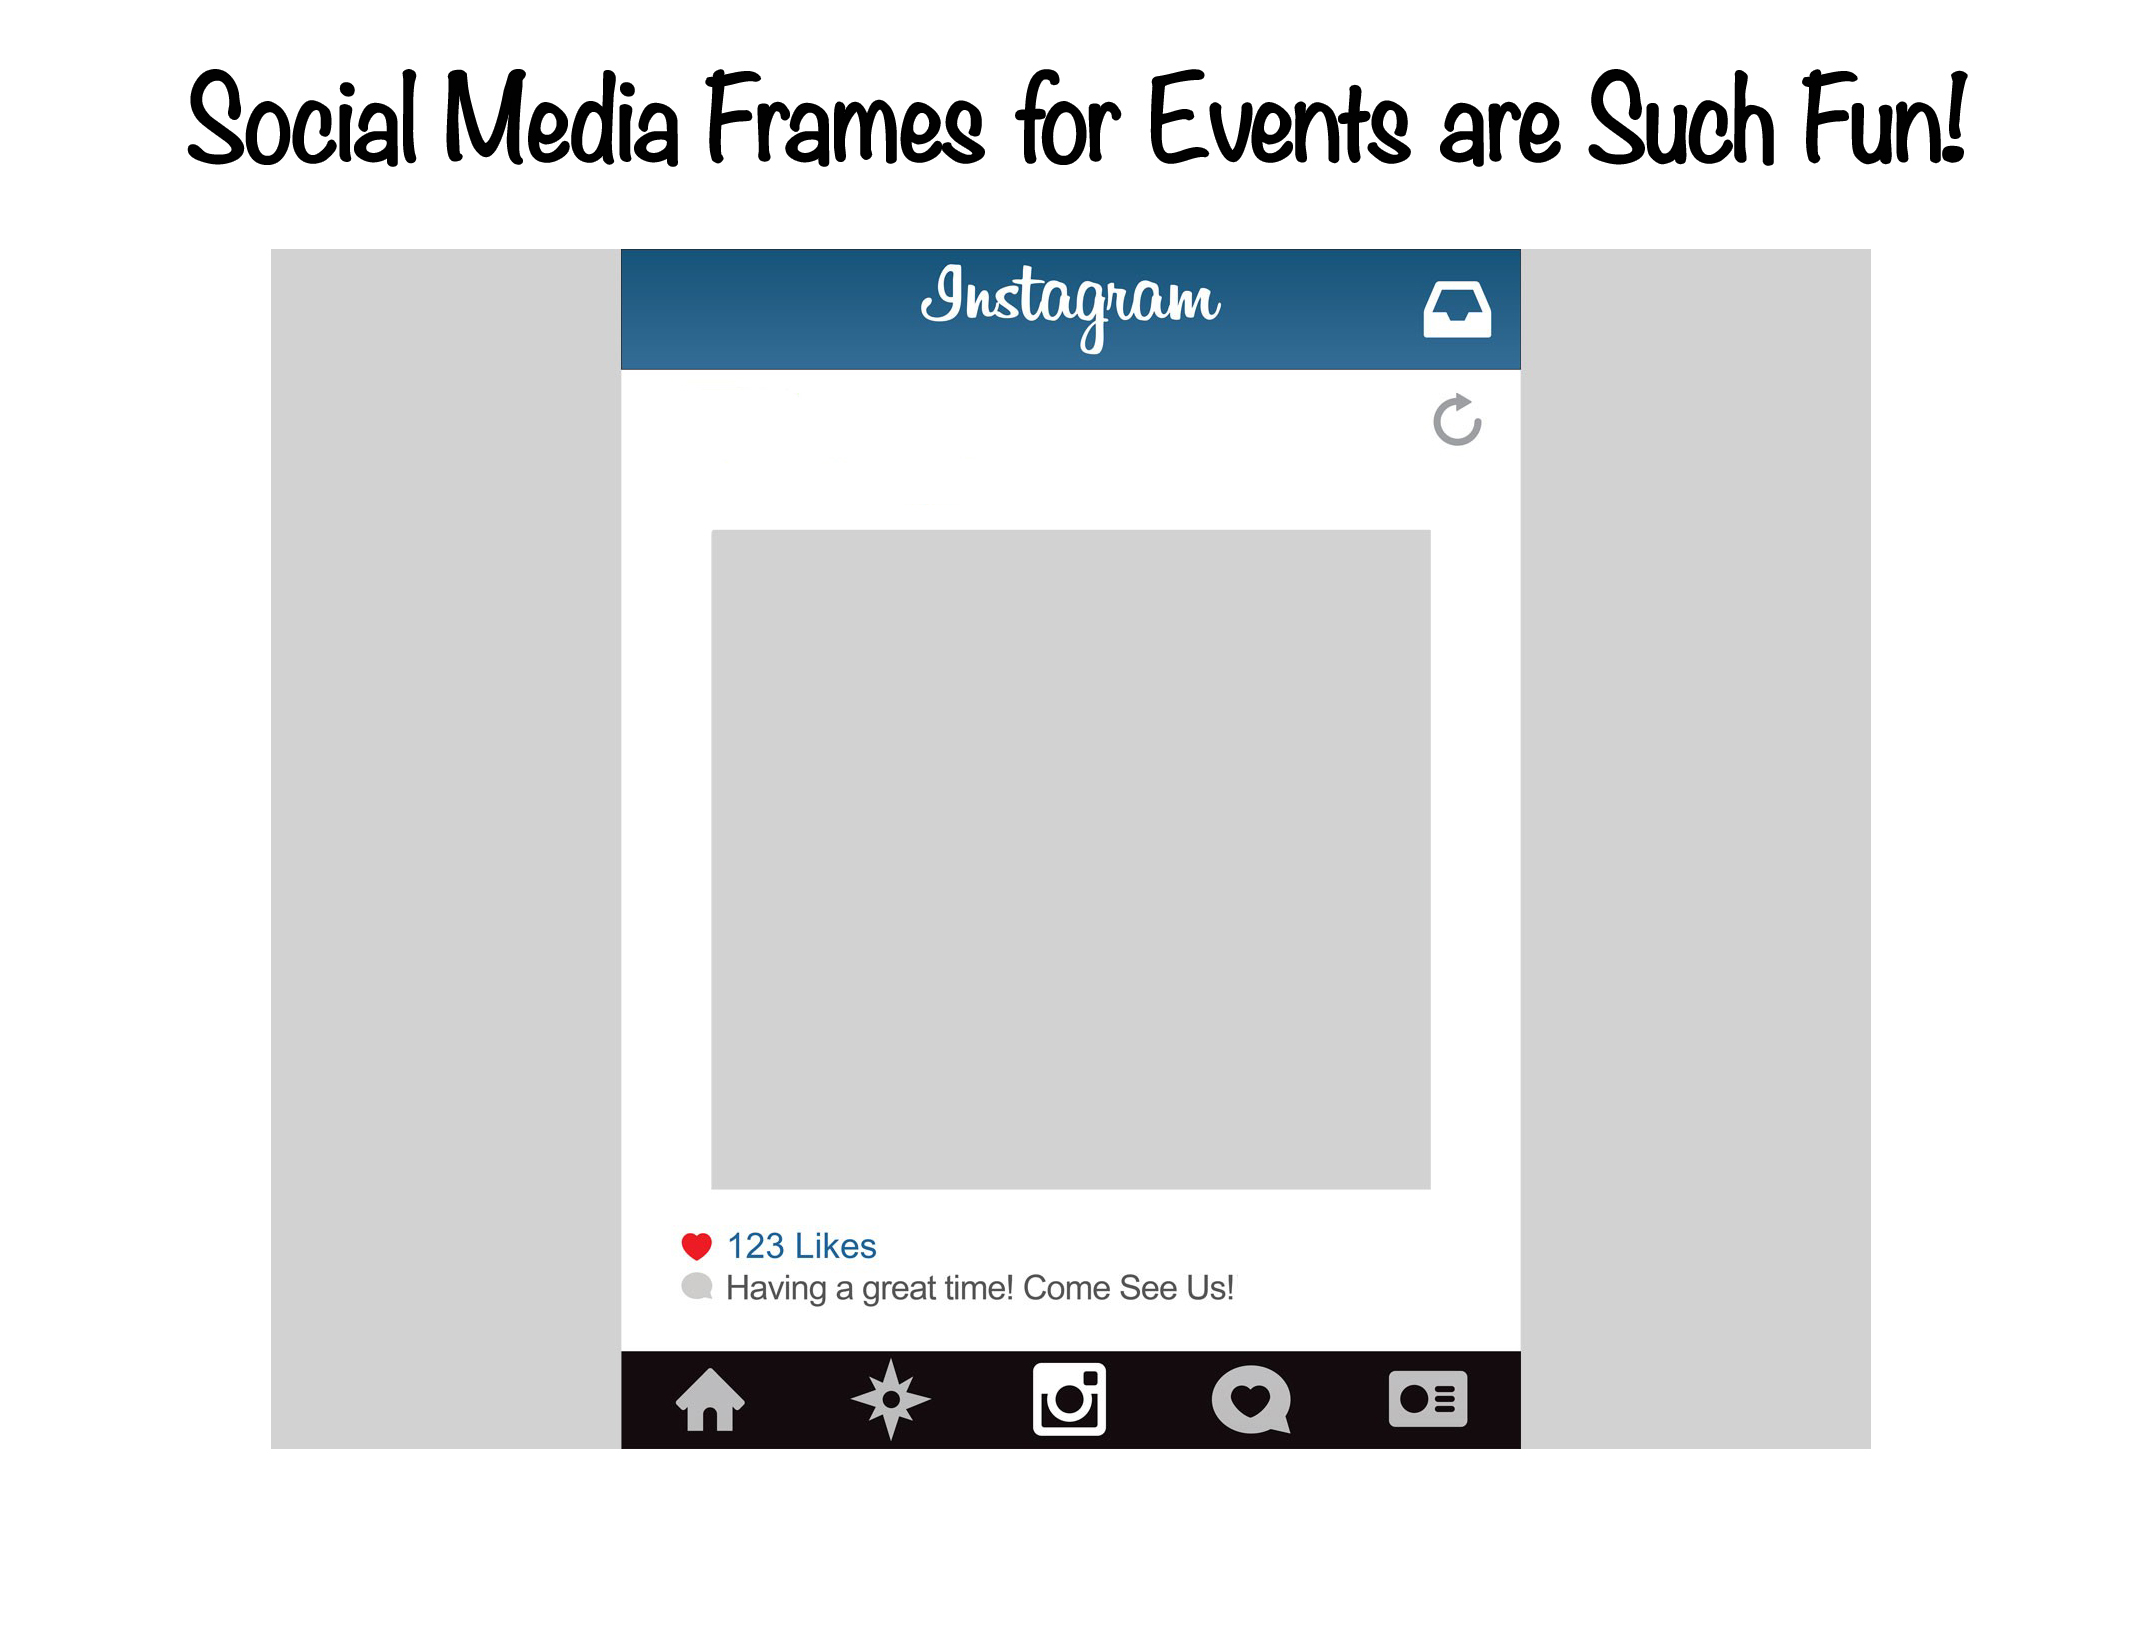 Social Media Frames for Events are Such Fun! - Let Me Organise You